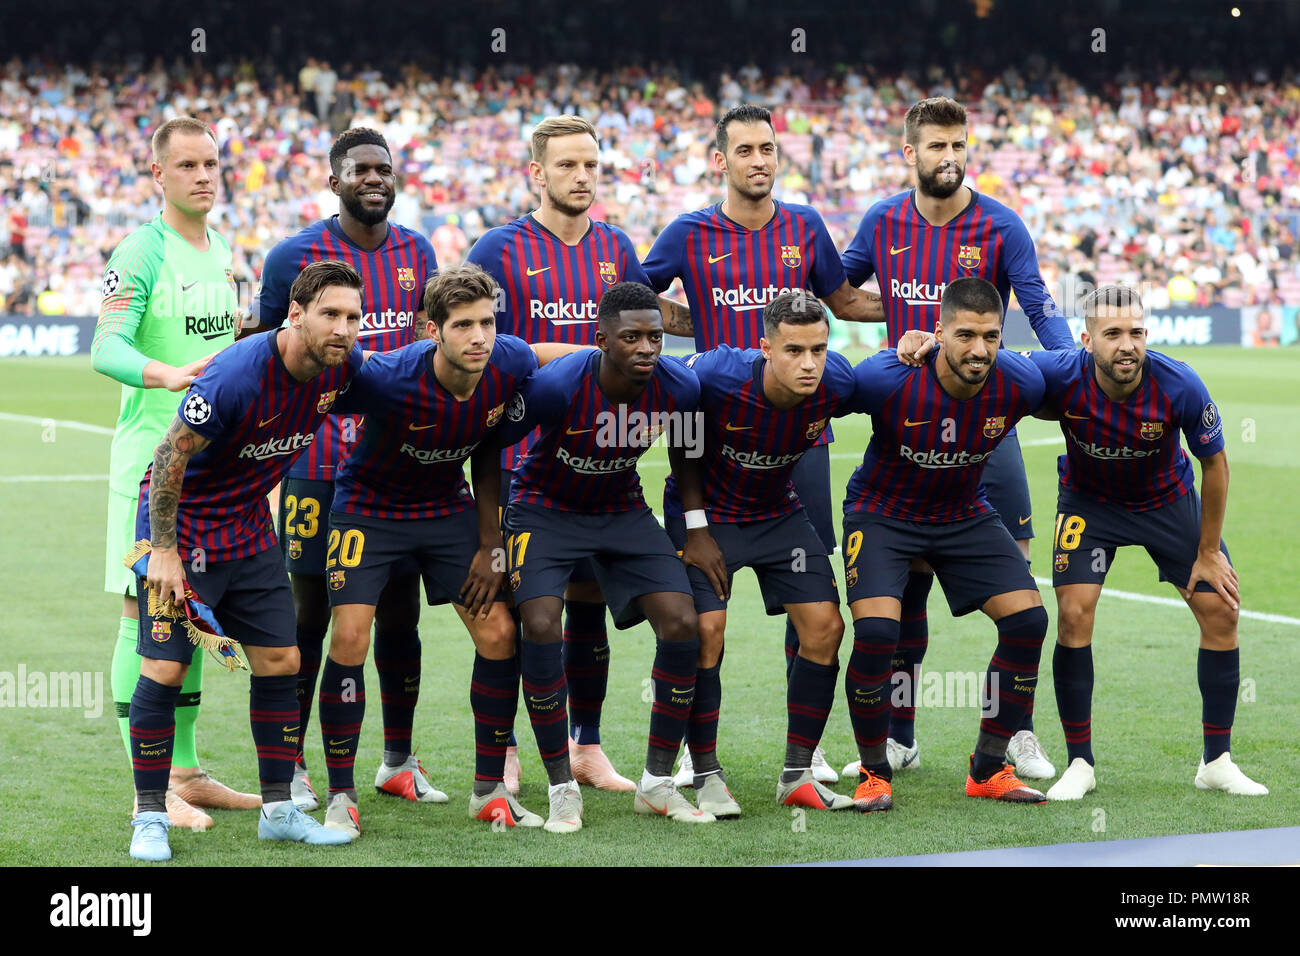 7b7d90a54c2 Barcelona Team Pose Stock Photos   Barcelona Team Pose Stock Images ...